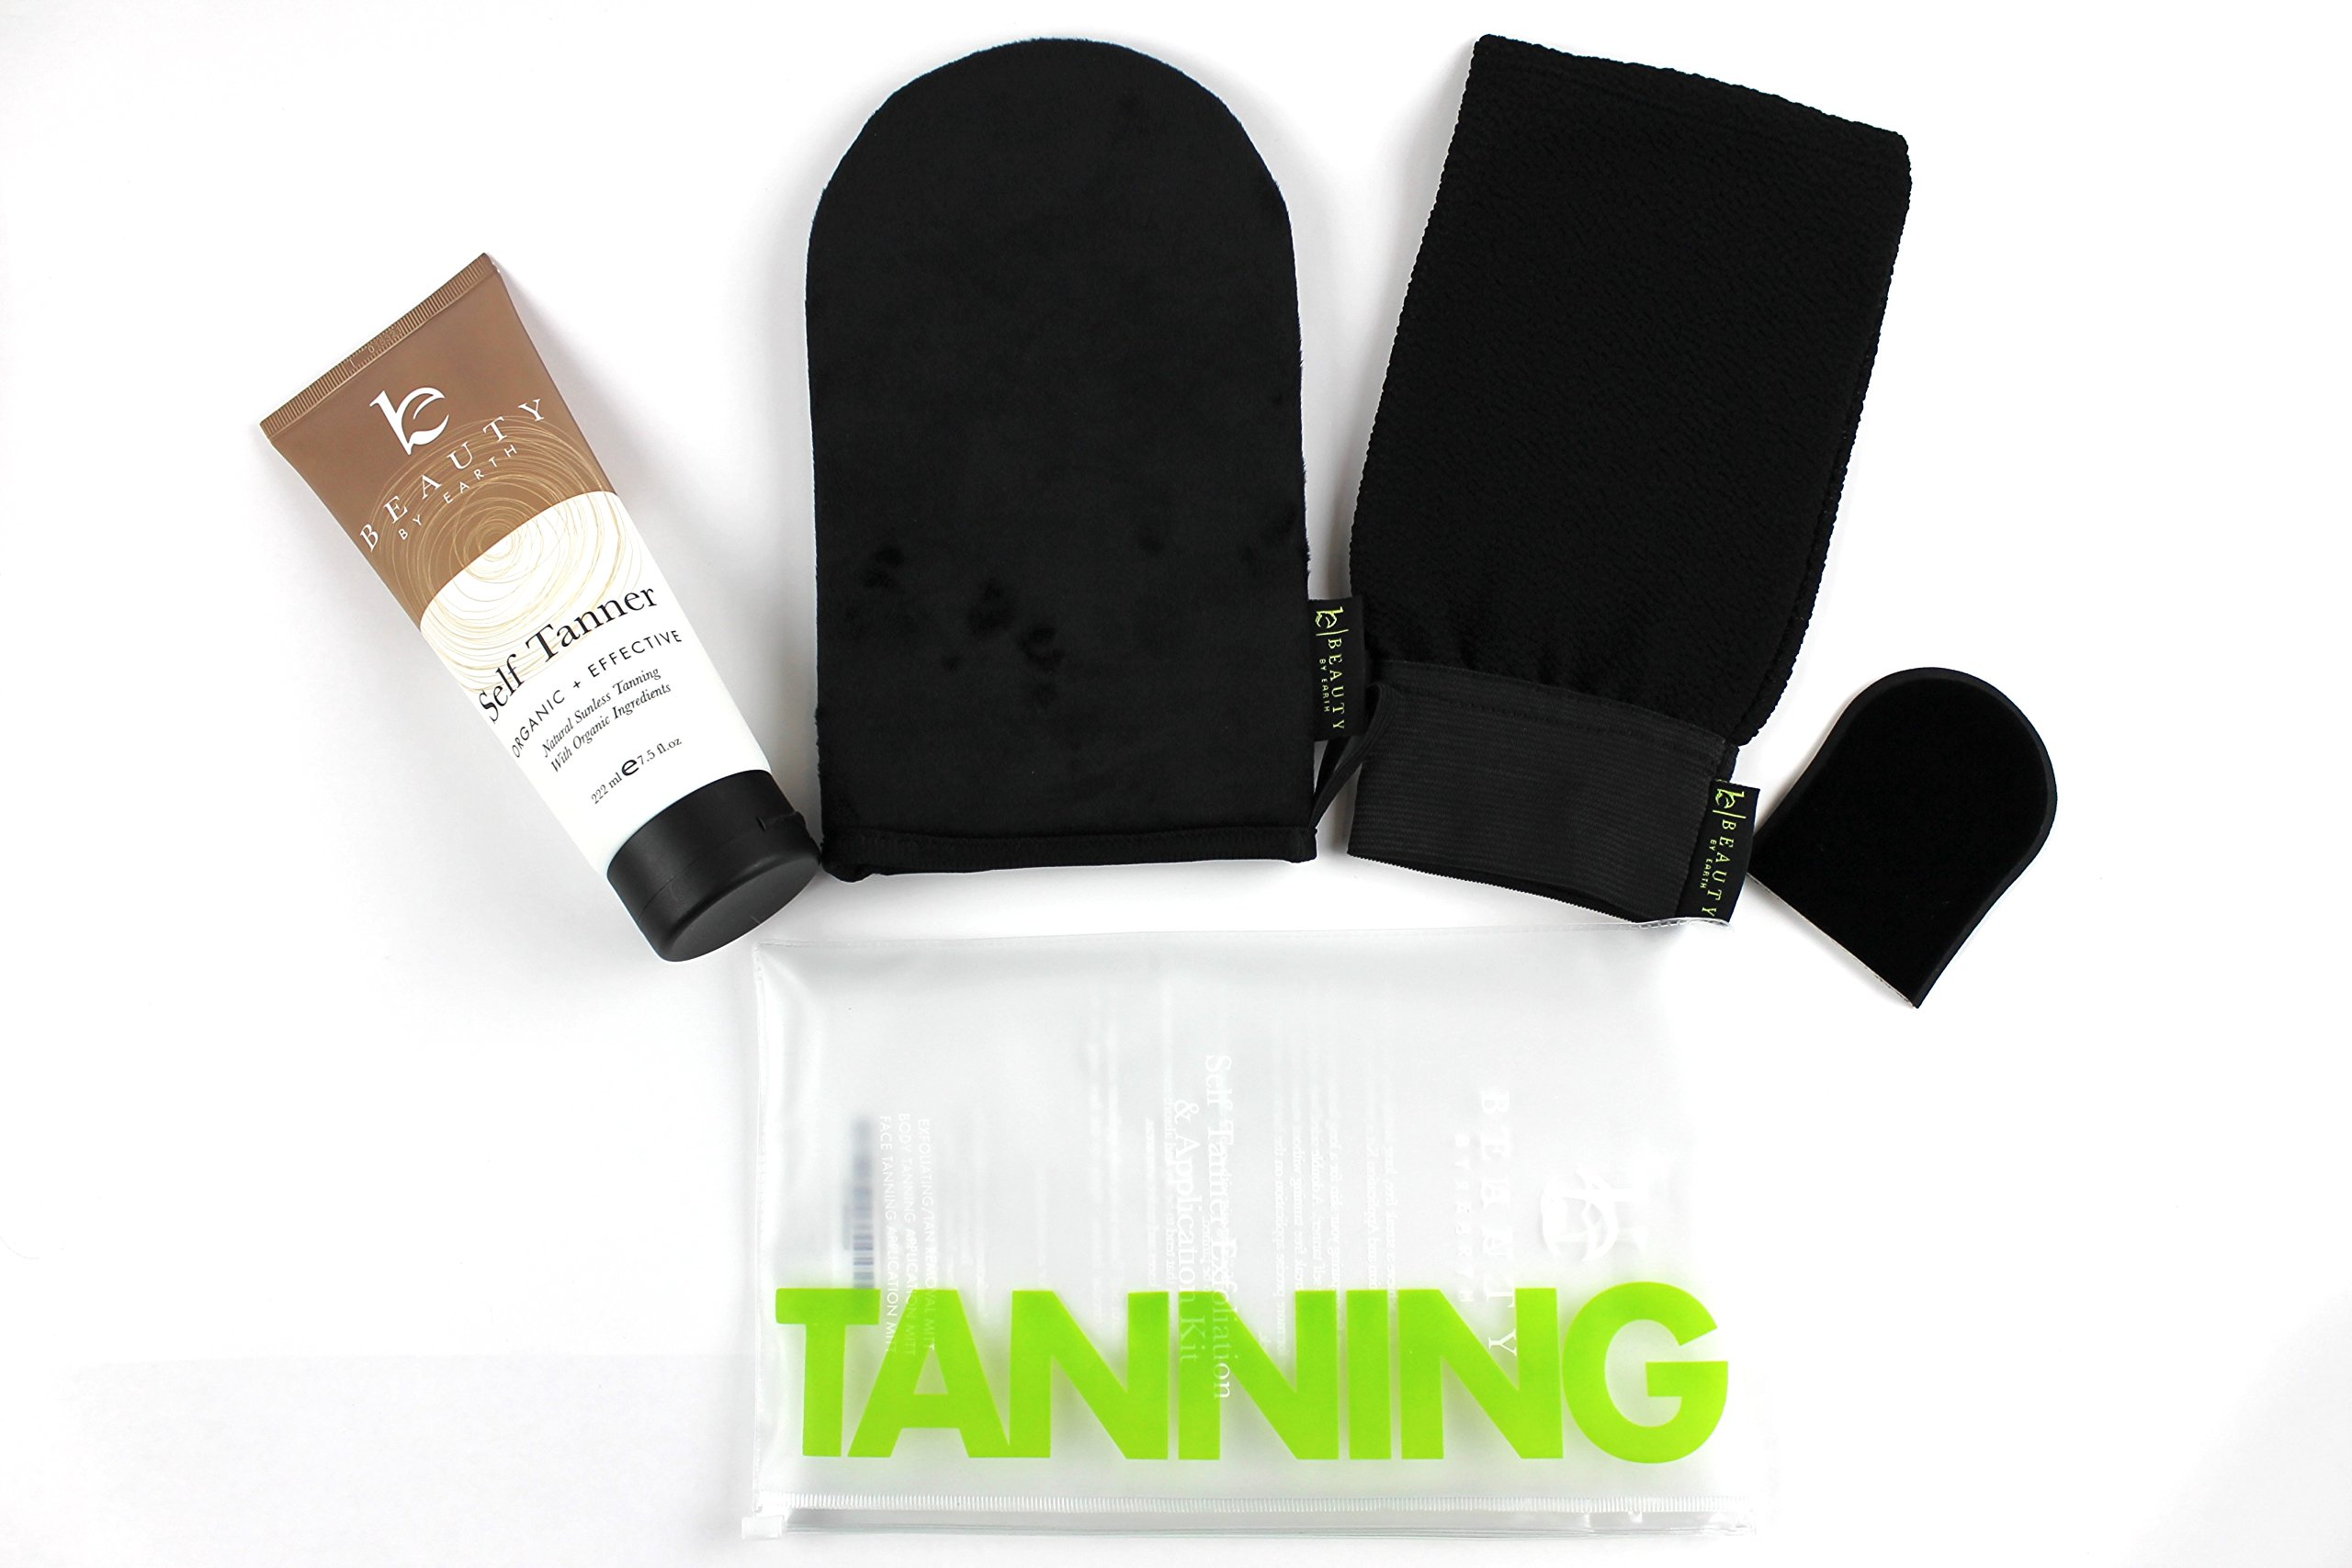 Self Tanner & Tanning Application Kit - Bundle of Sunless Tanning Lotion Made With Natural & Organic Ingredients, Exfoliation Mitt, Body and Face Applicator Glove for a Professional Self Tan by Beauty by Earth (Image #2)